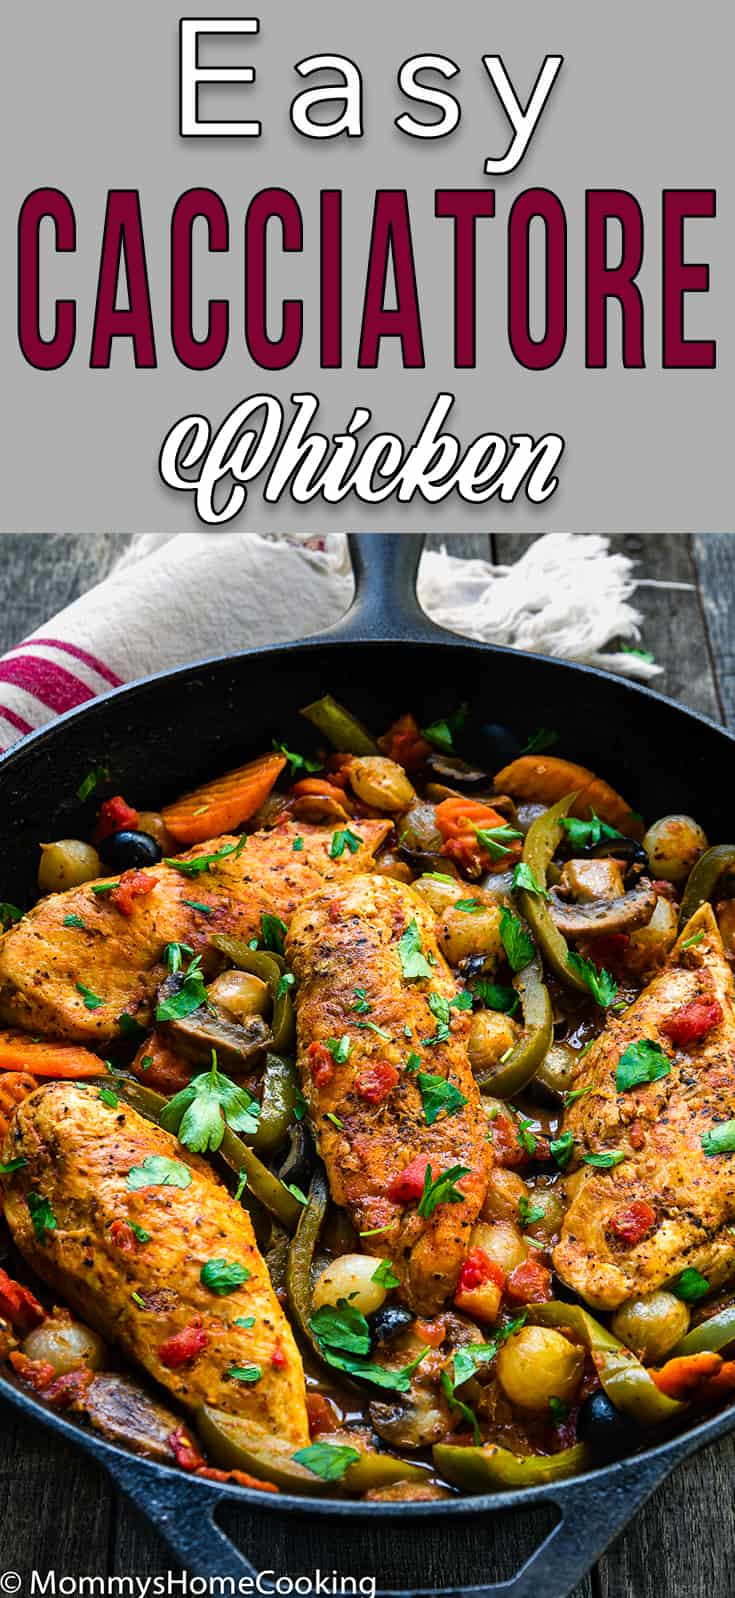 EasyChickenBreasts Cacciatore in a cast iron skillet with veggies and descriptive text